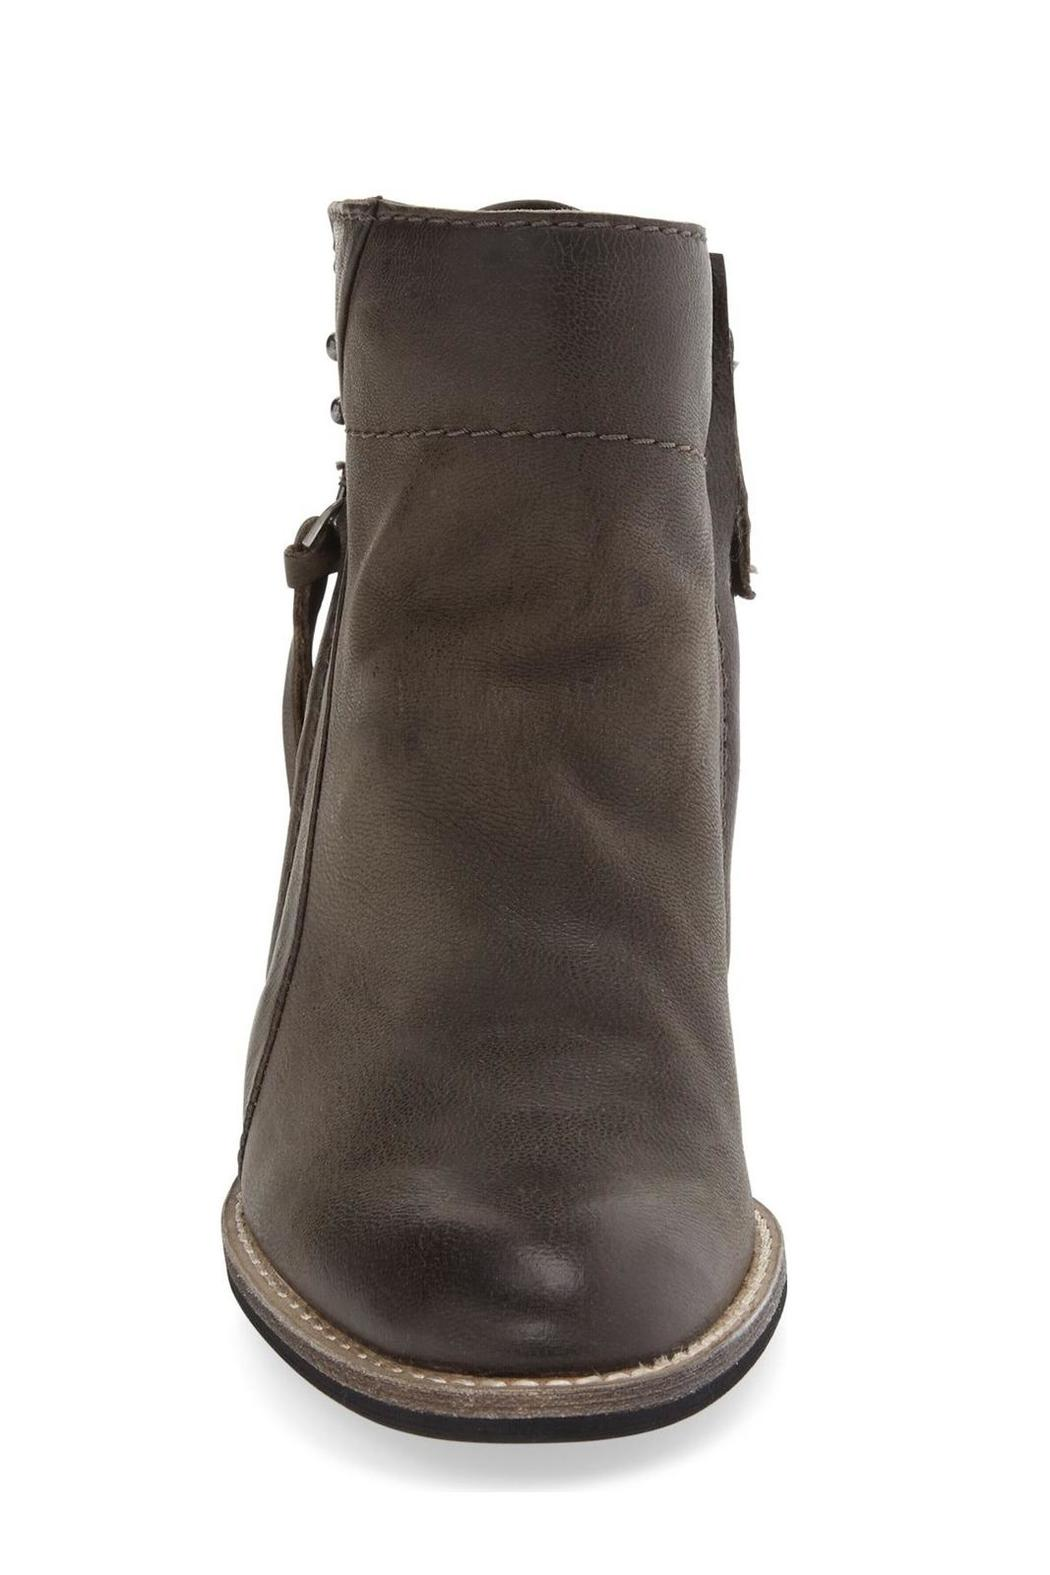 Dolce Vita Jessie Ankle Bootie - Front Full Image